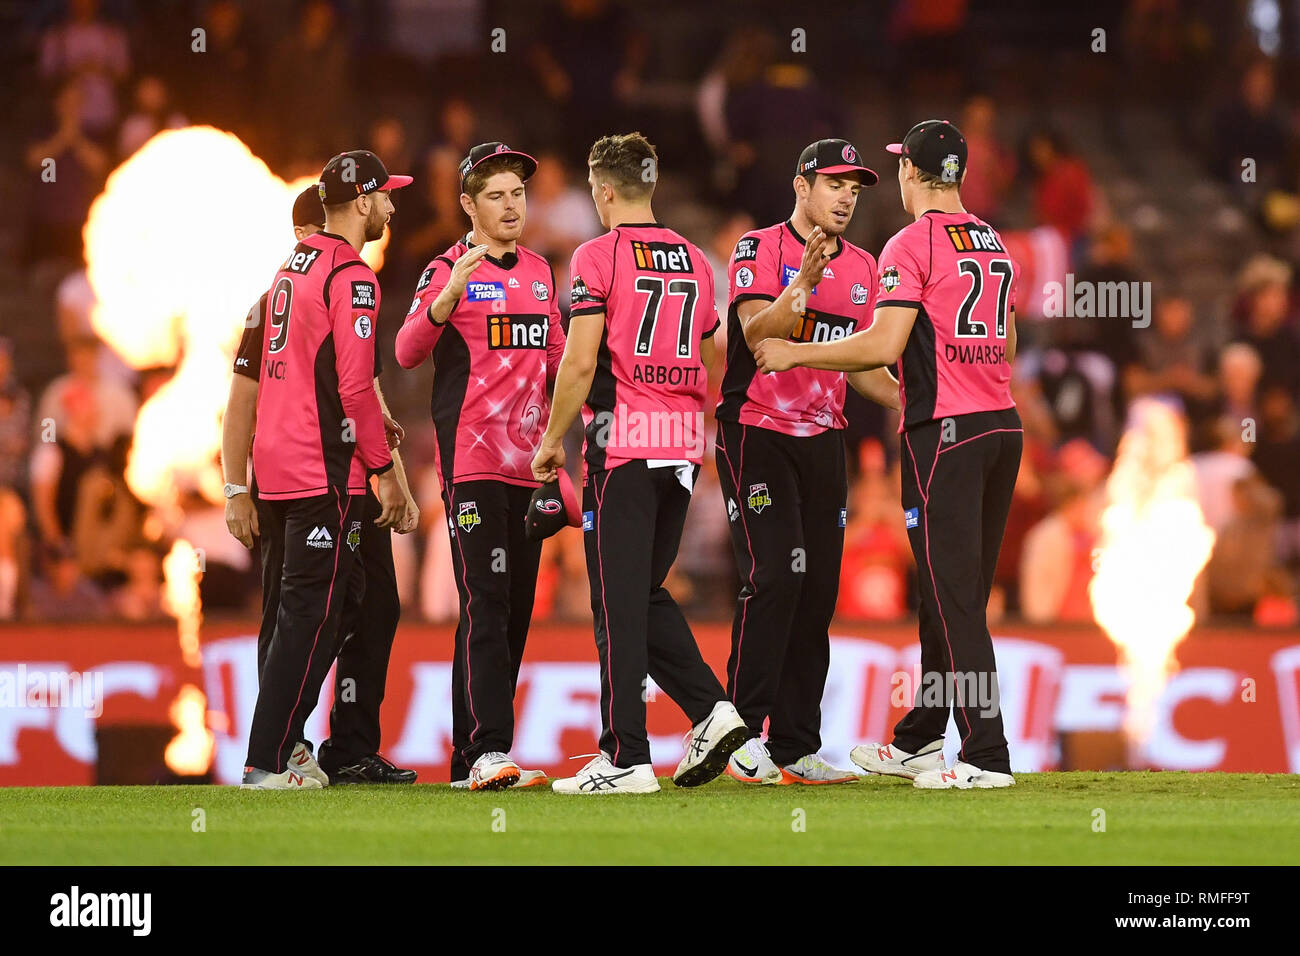 Marvel Stadium, Melbourne, Australia. 15th Feb, 2019. Australian Big Bash Cricket League, Melbourne Renegades versus Sydney Sixers; Sydney players consolidate each other after losing the game Credit: Action Plus Sports/Alamy Live News - Stock Image